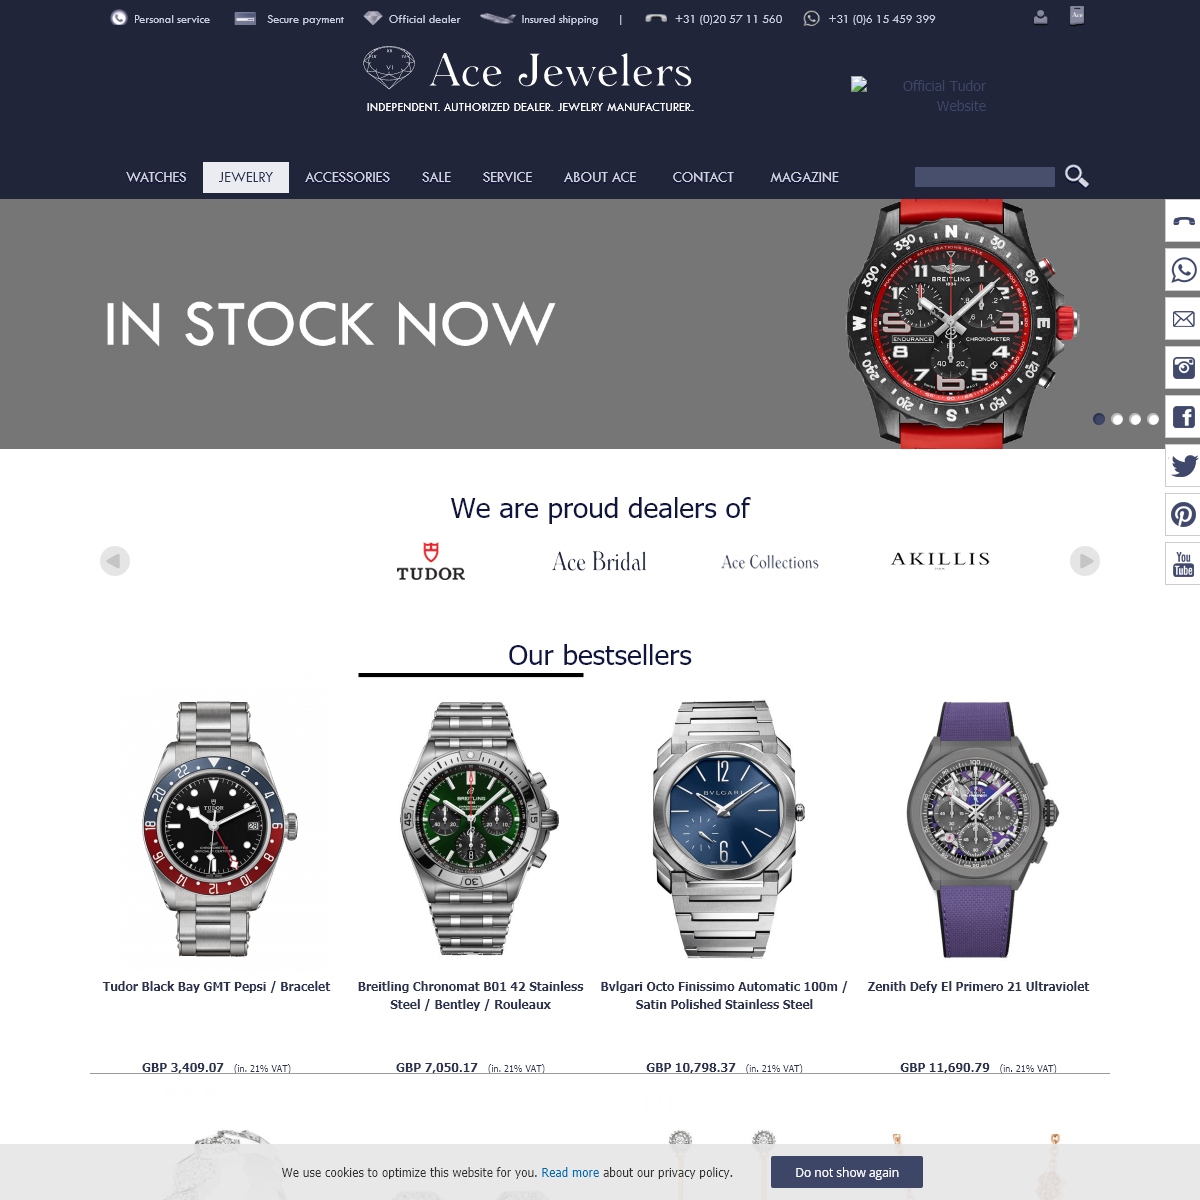 AceJewelers.com - Shop luxury watches and jewelery online at Ace Jewelers, authorized by each brand.